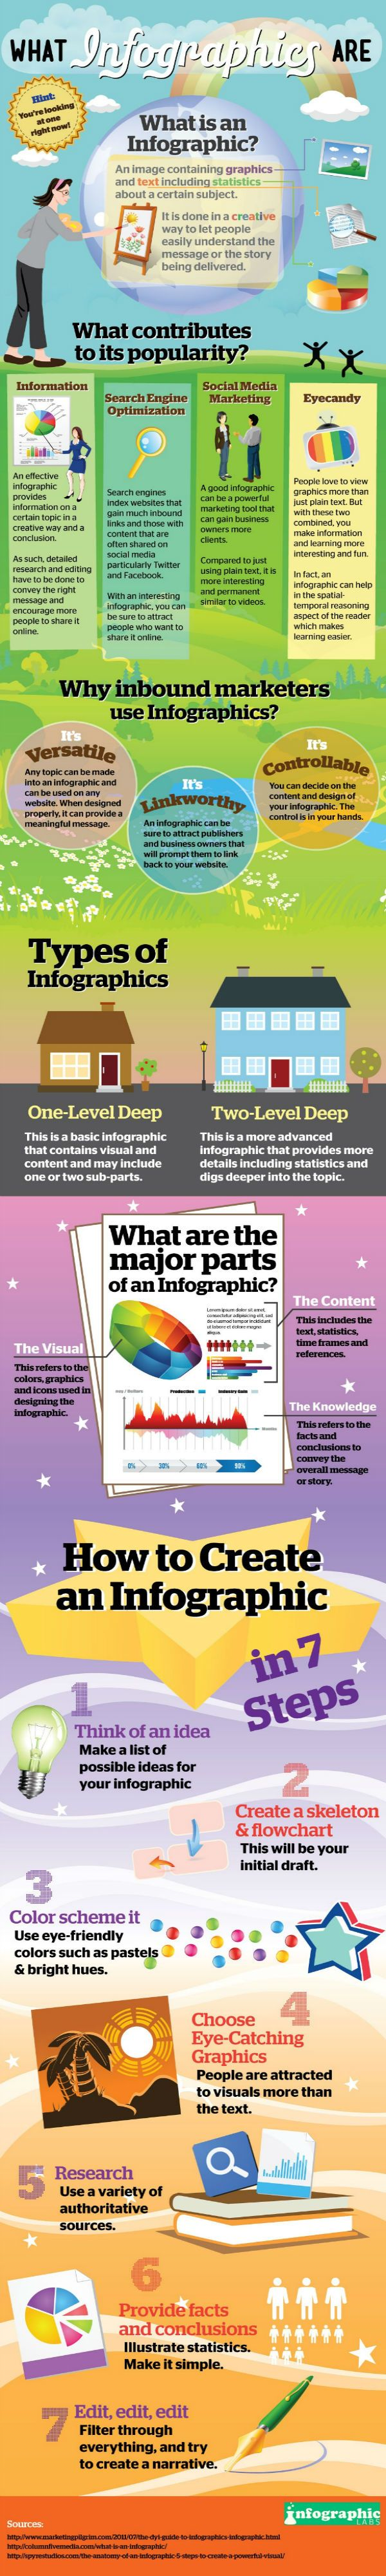 How to create a killer Infographic - {INFOGRAPHIC STYLE!}    http://mashable.com/2012/07/09/how-to-create-an-infographic/?goback=%2Egde_66325_member_132565968